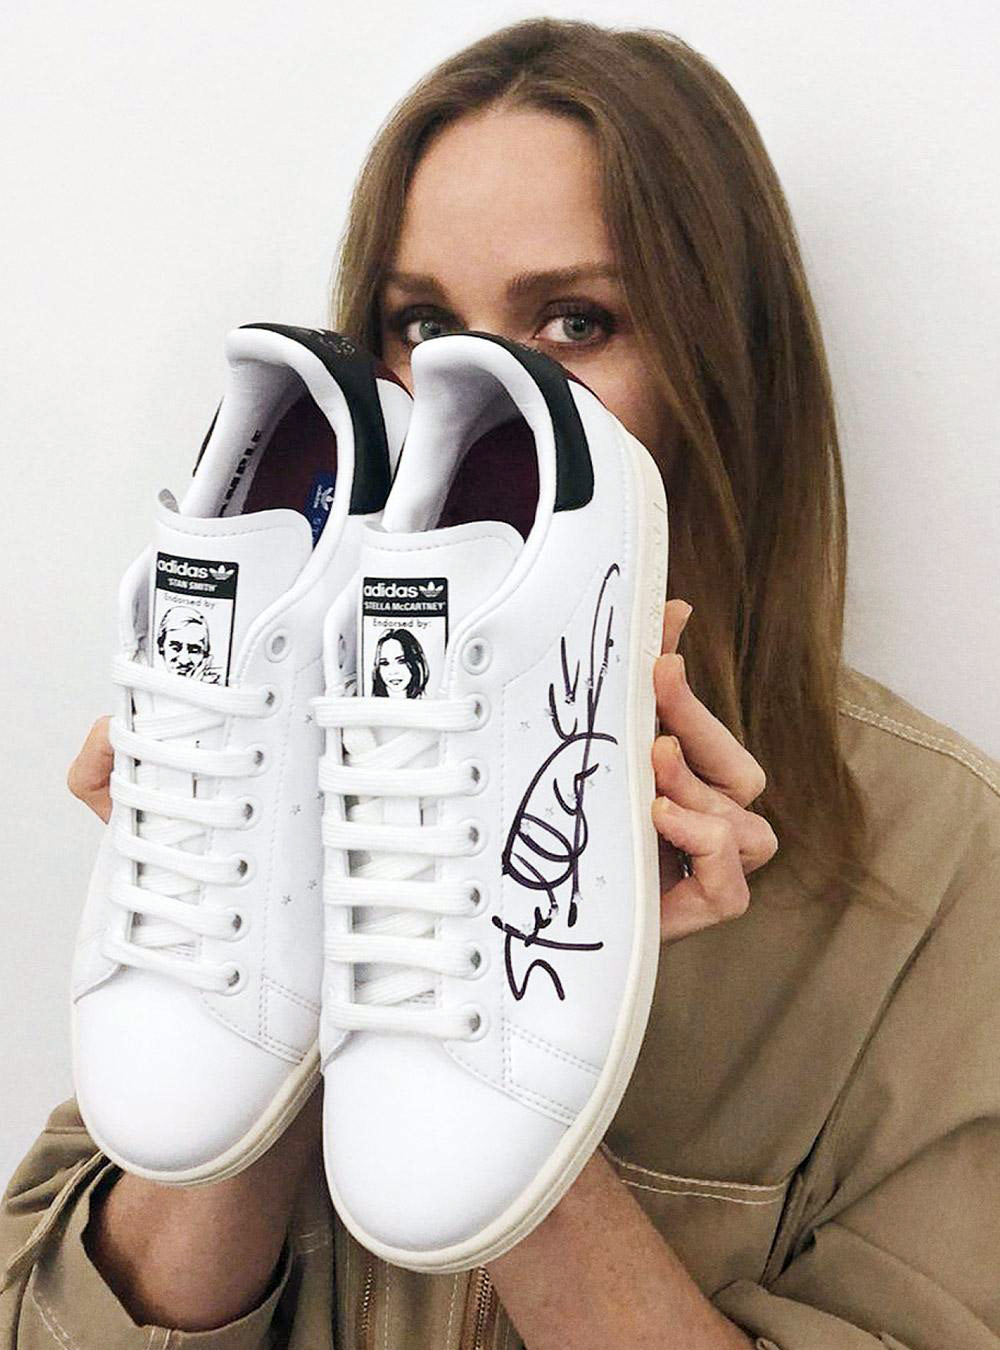 Vegan Adidas Stan Smith trainers by Stella McCartney - Stella holding the vegan trainers